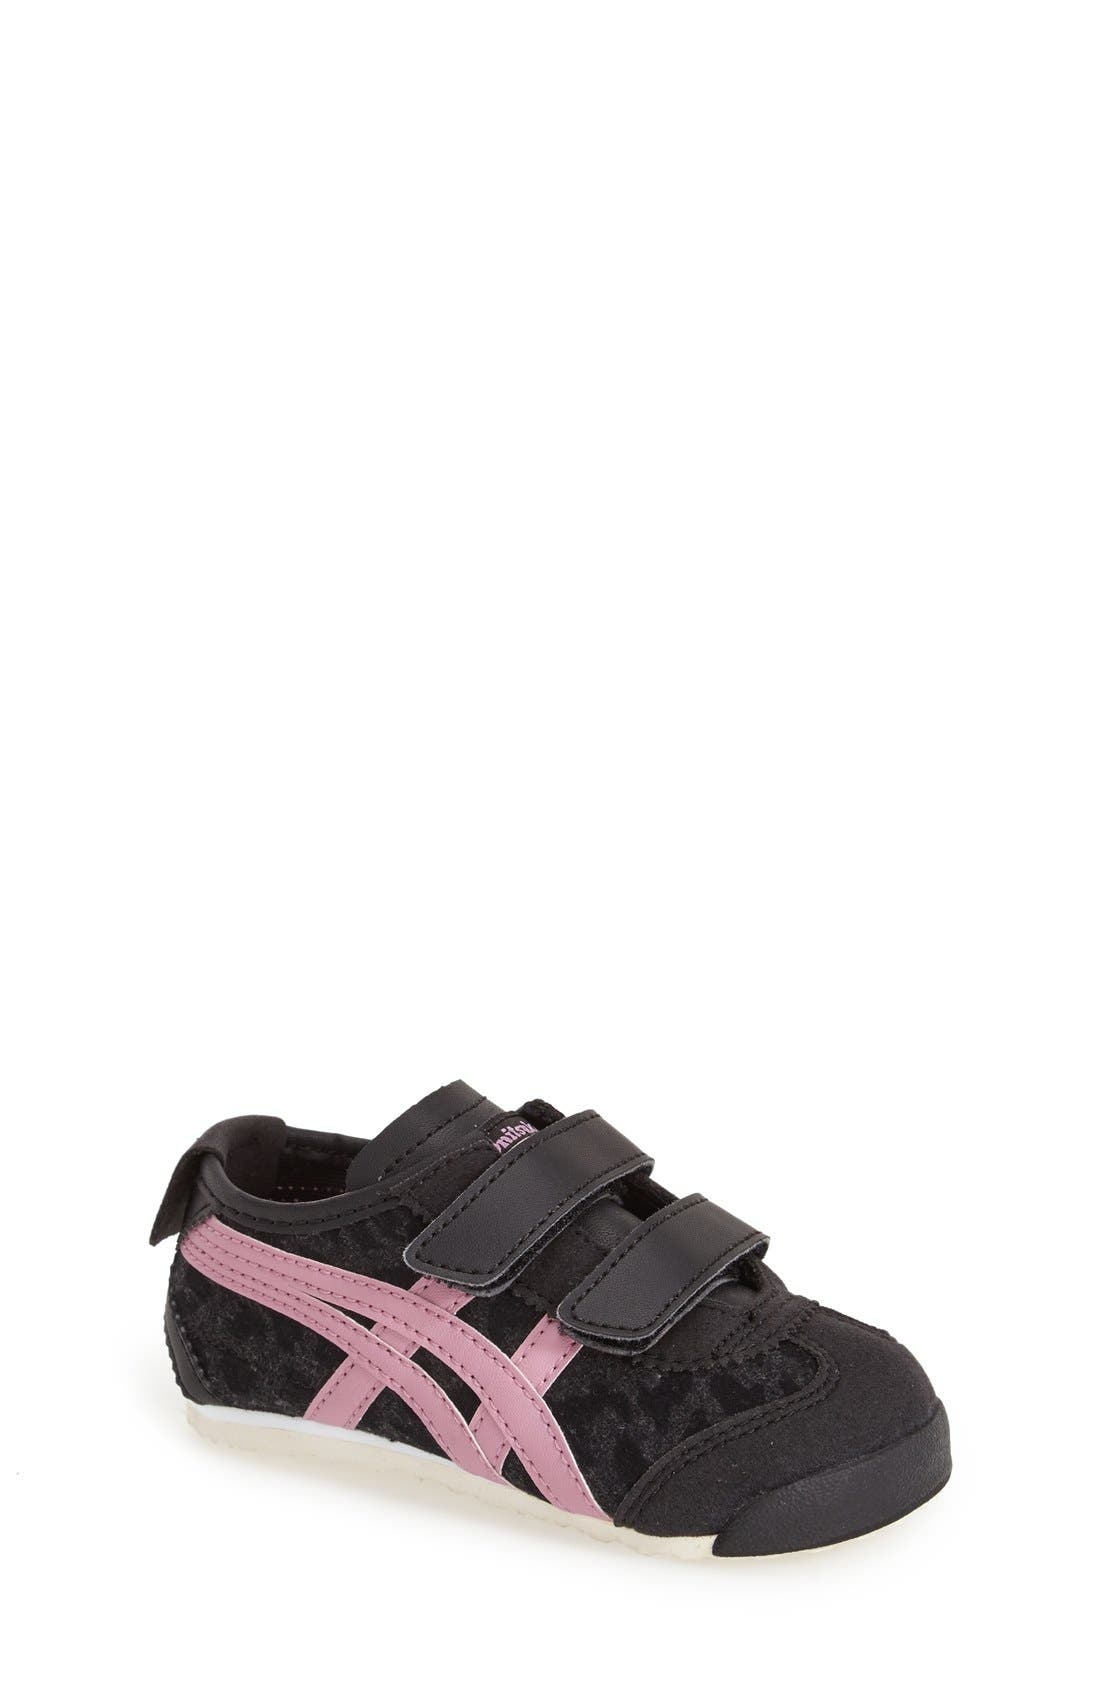 onitsuka tiger mexico 66 black and pink jersey blanca